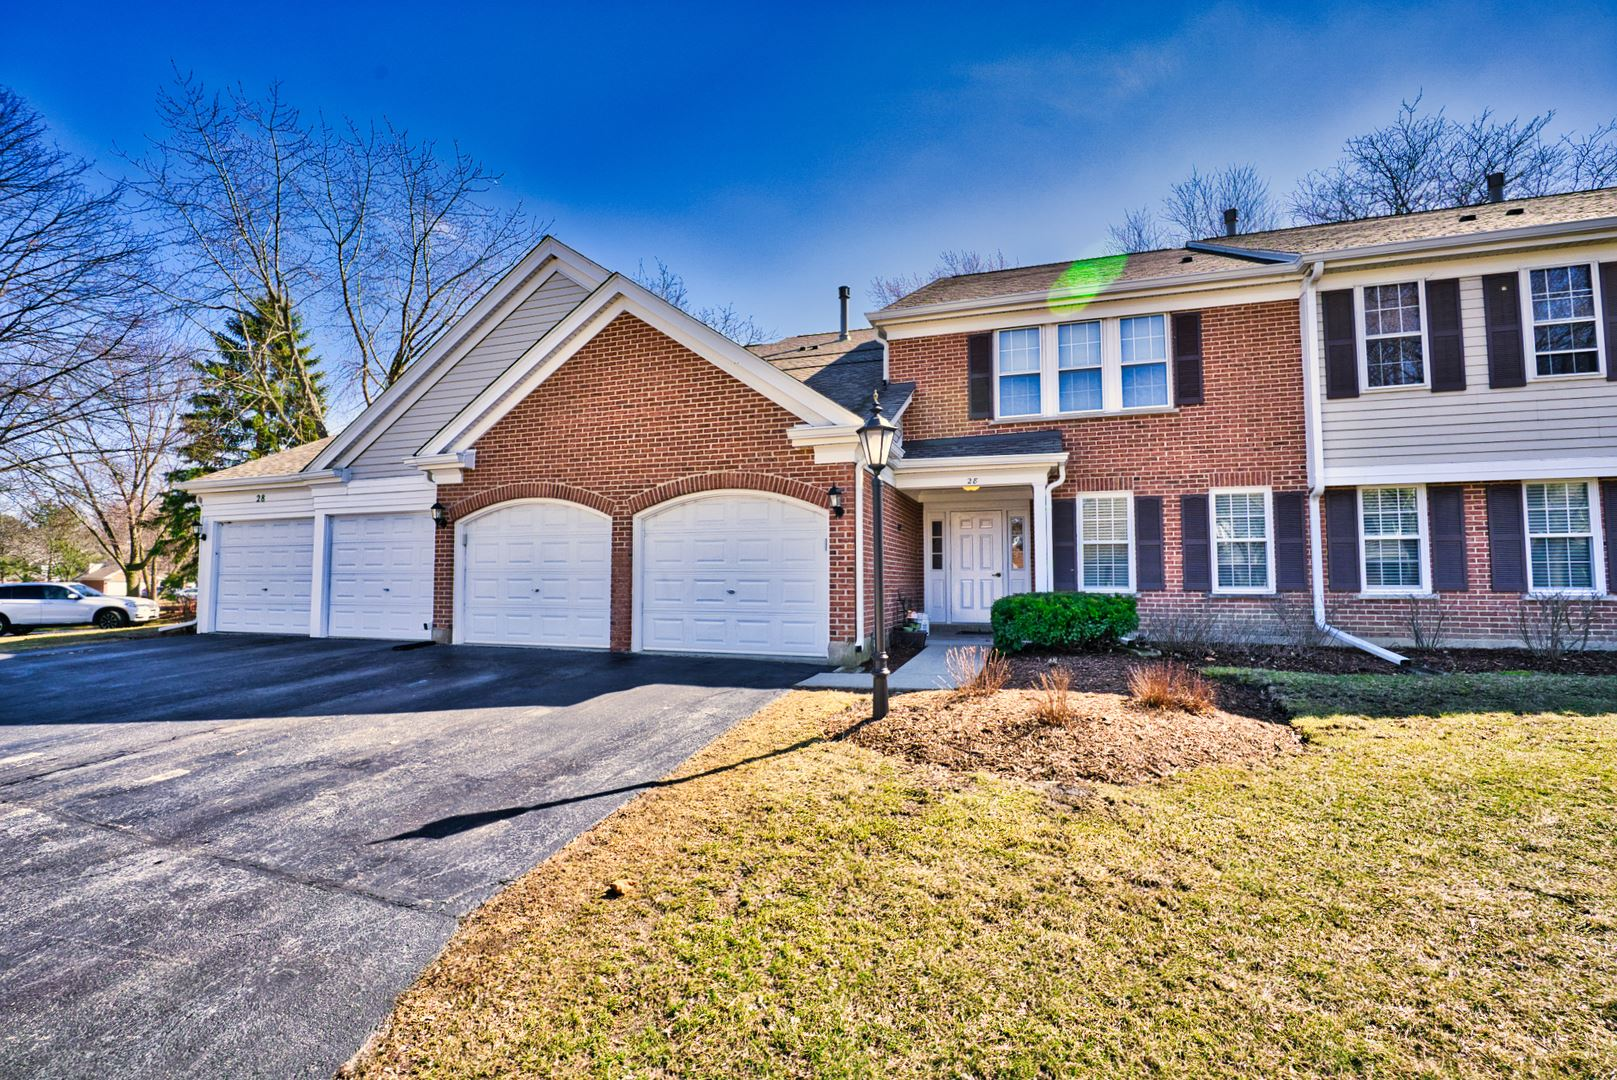 28 COUNTRY CLUB Drive #B, Prospect Heights, IL 60070 - #: 10775581